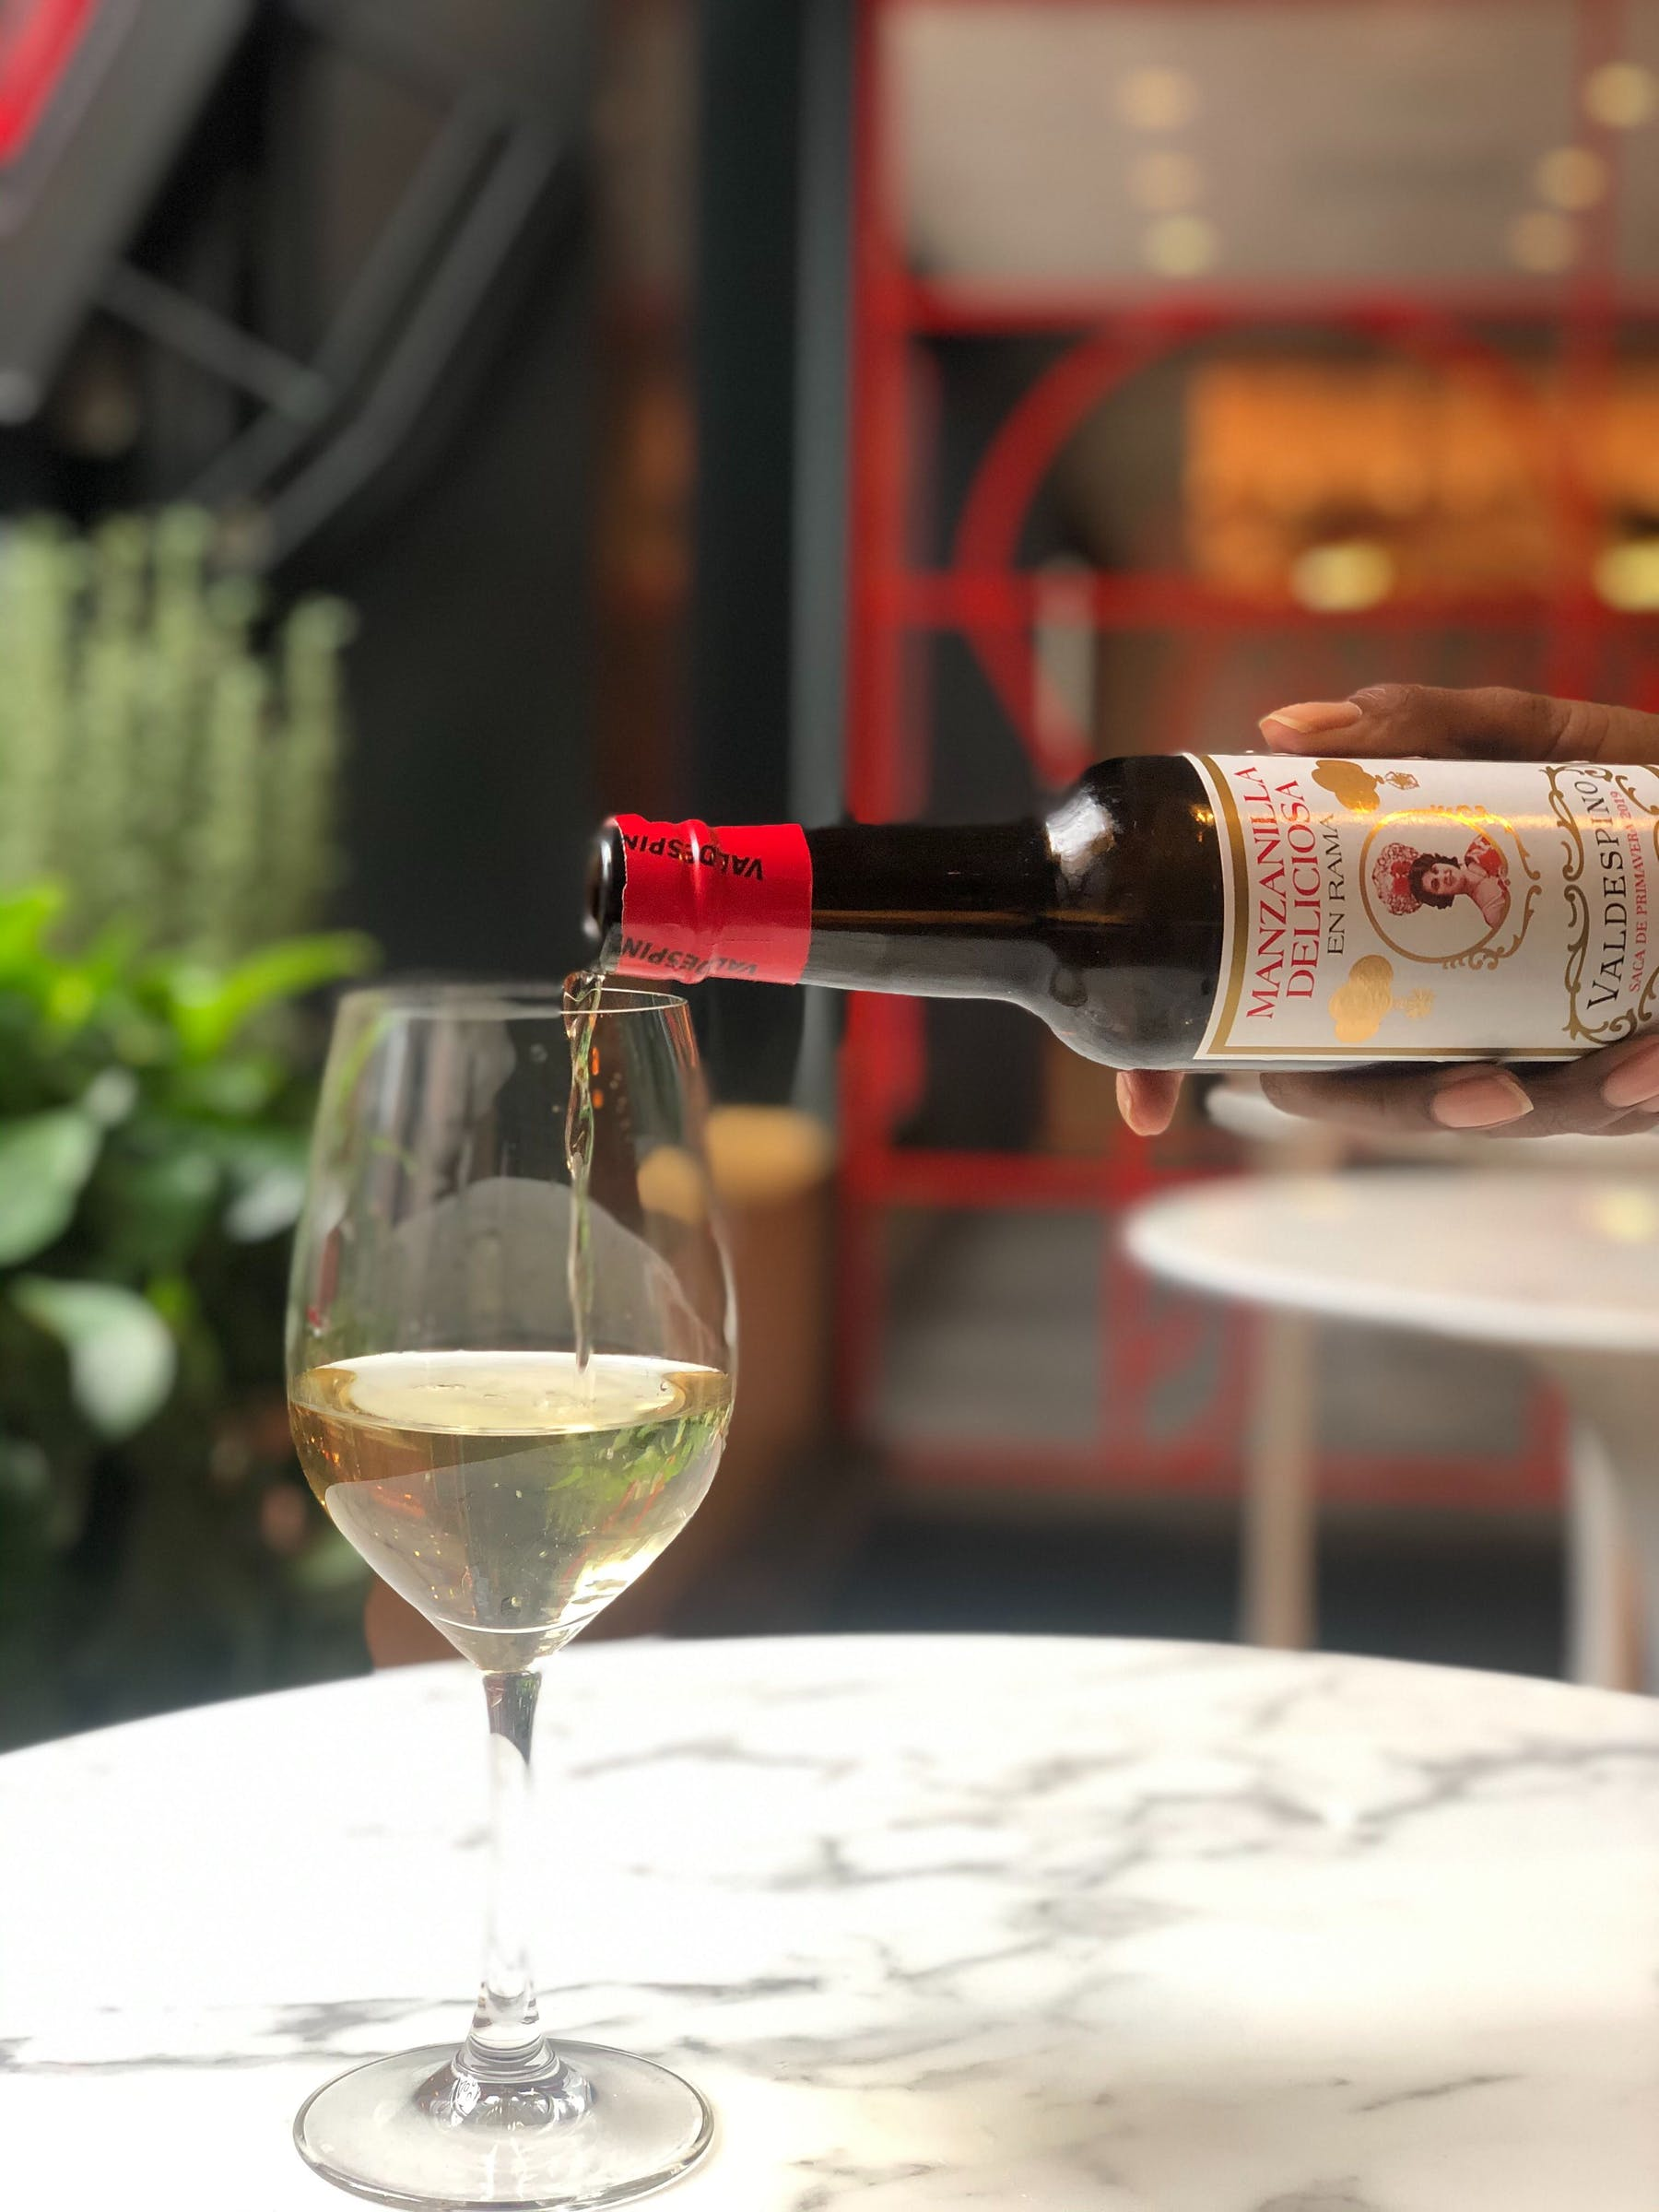 Sherry, Southern Spain's Famous Fortified Wine